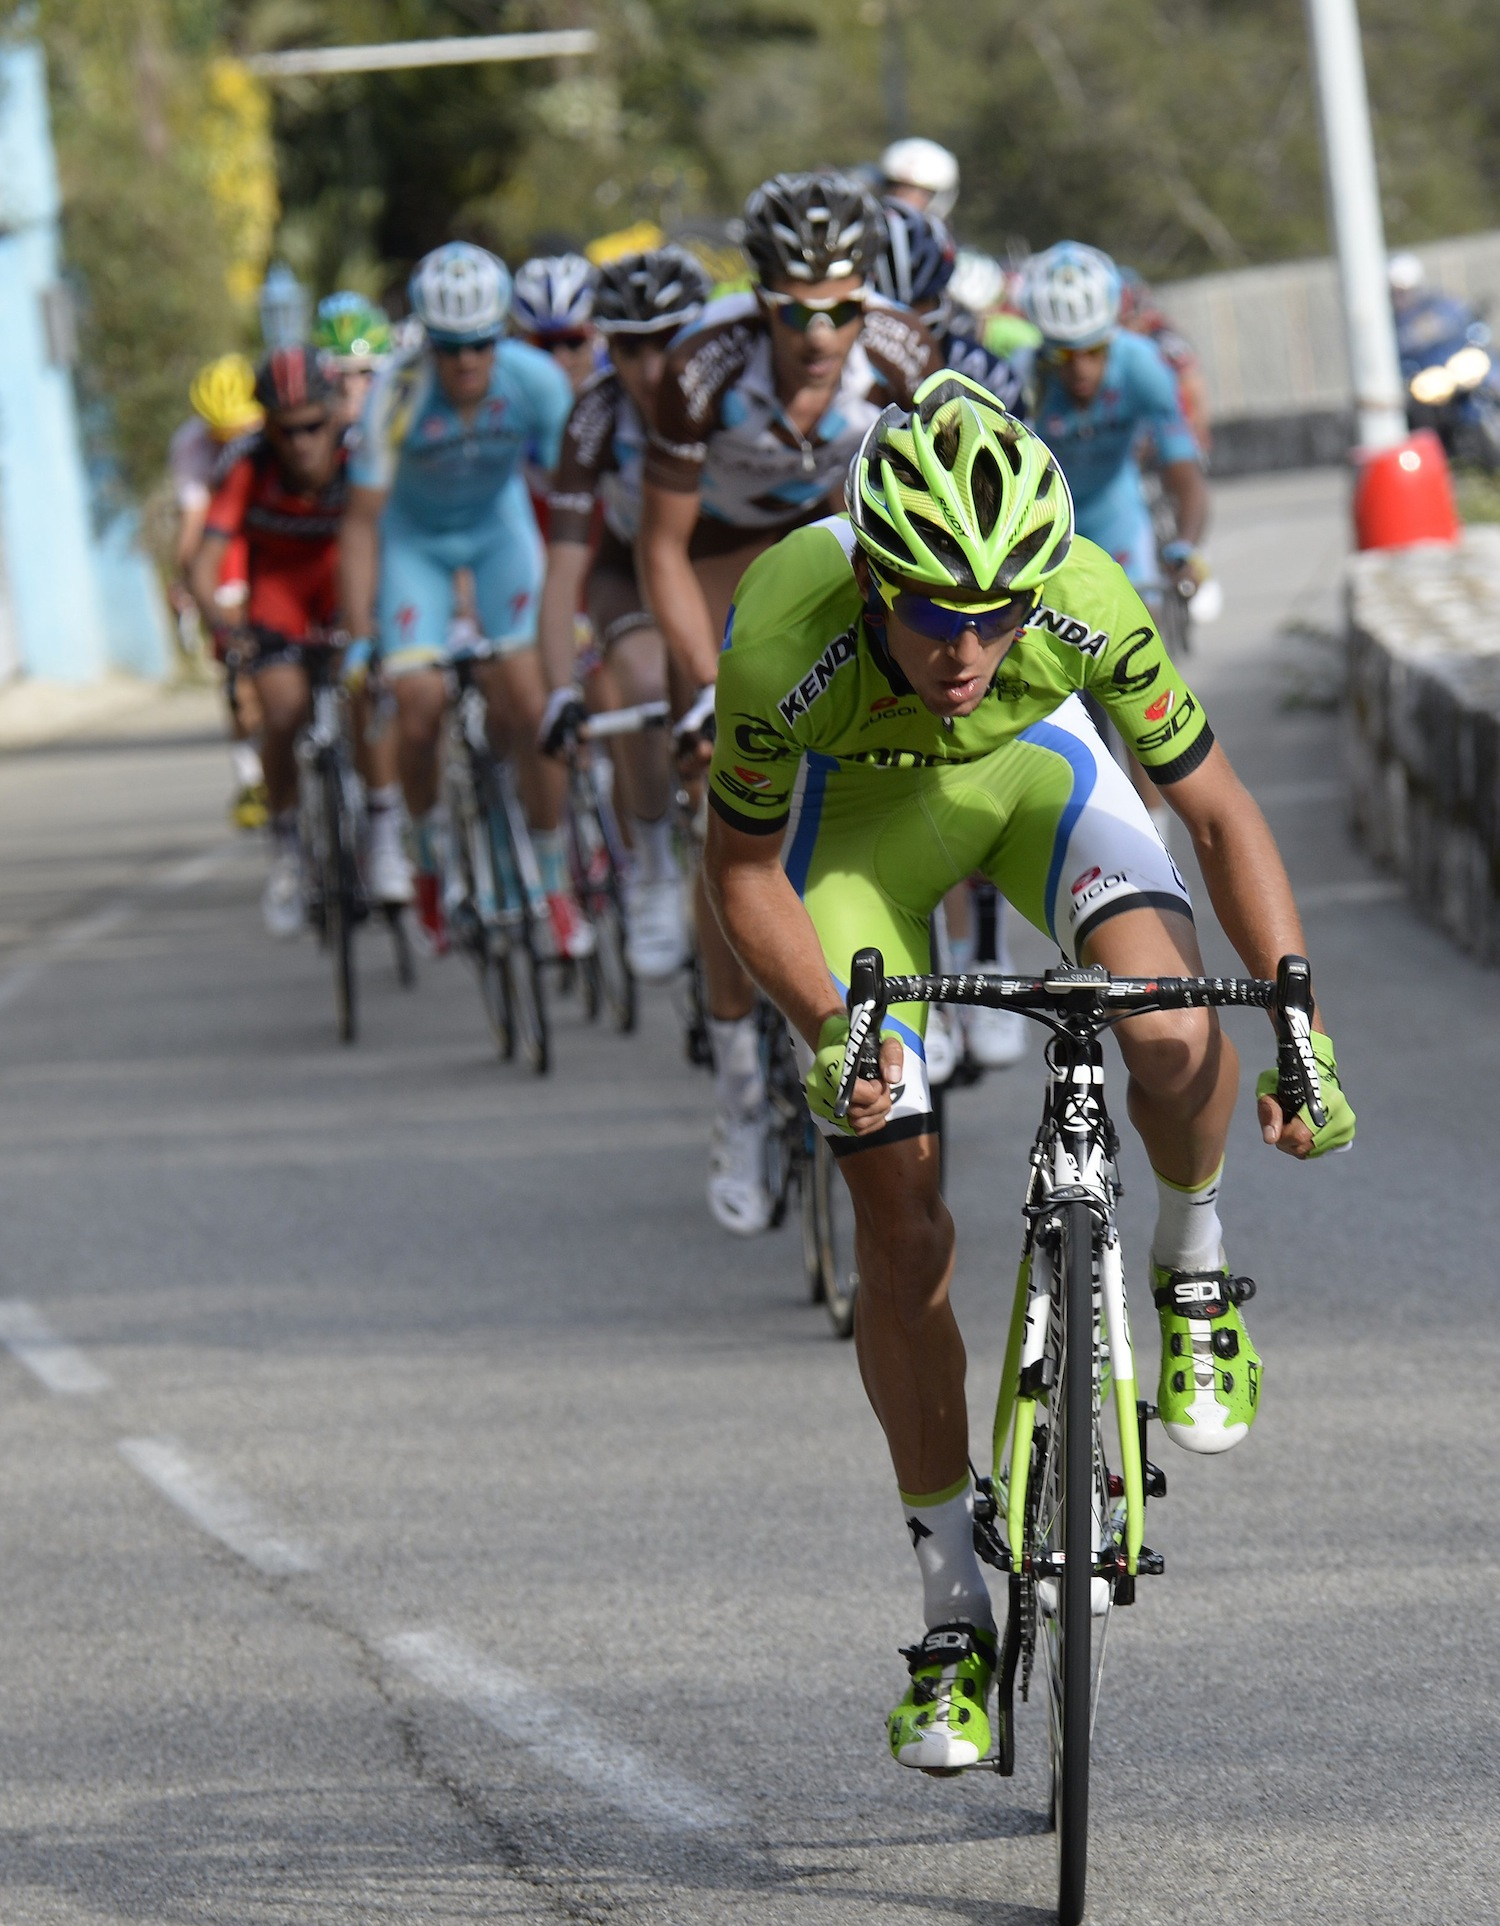 On the attack during Stage 8...